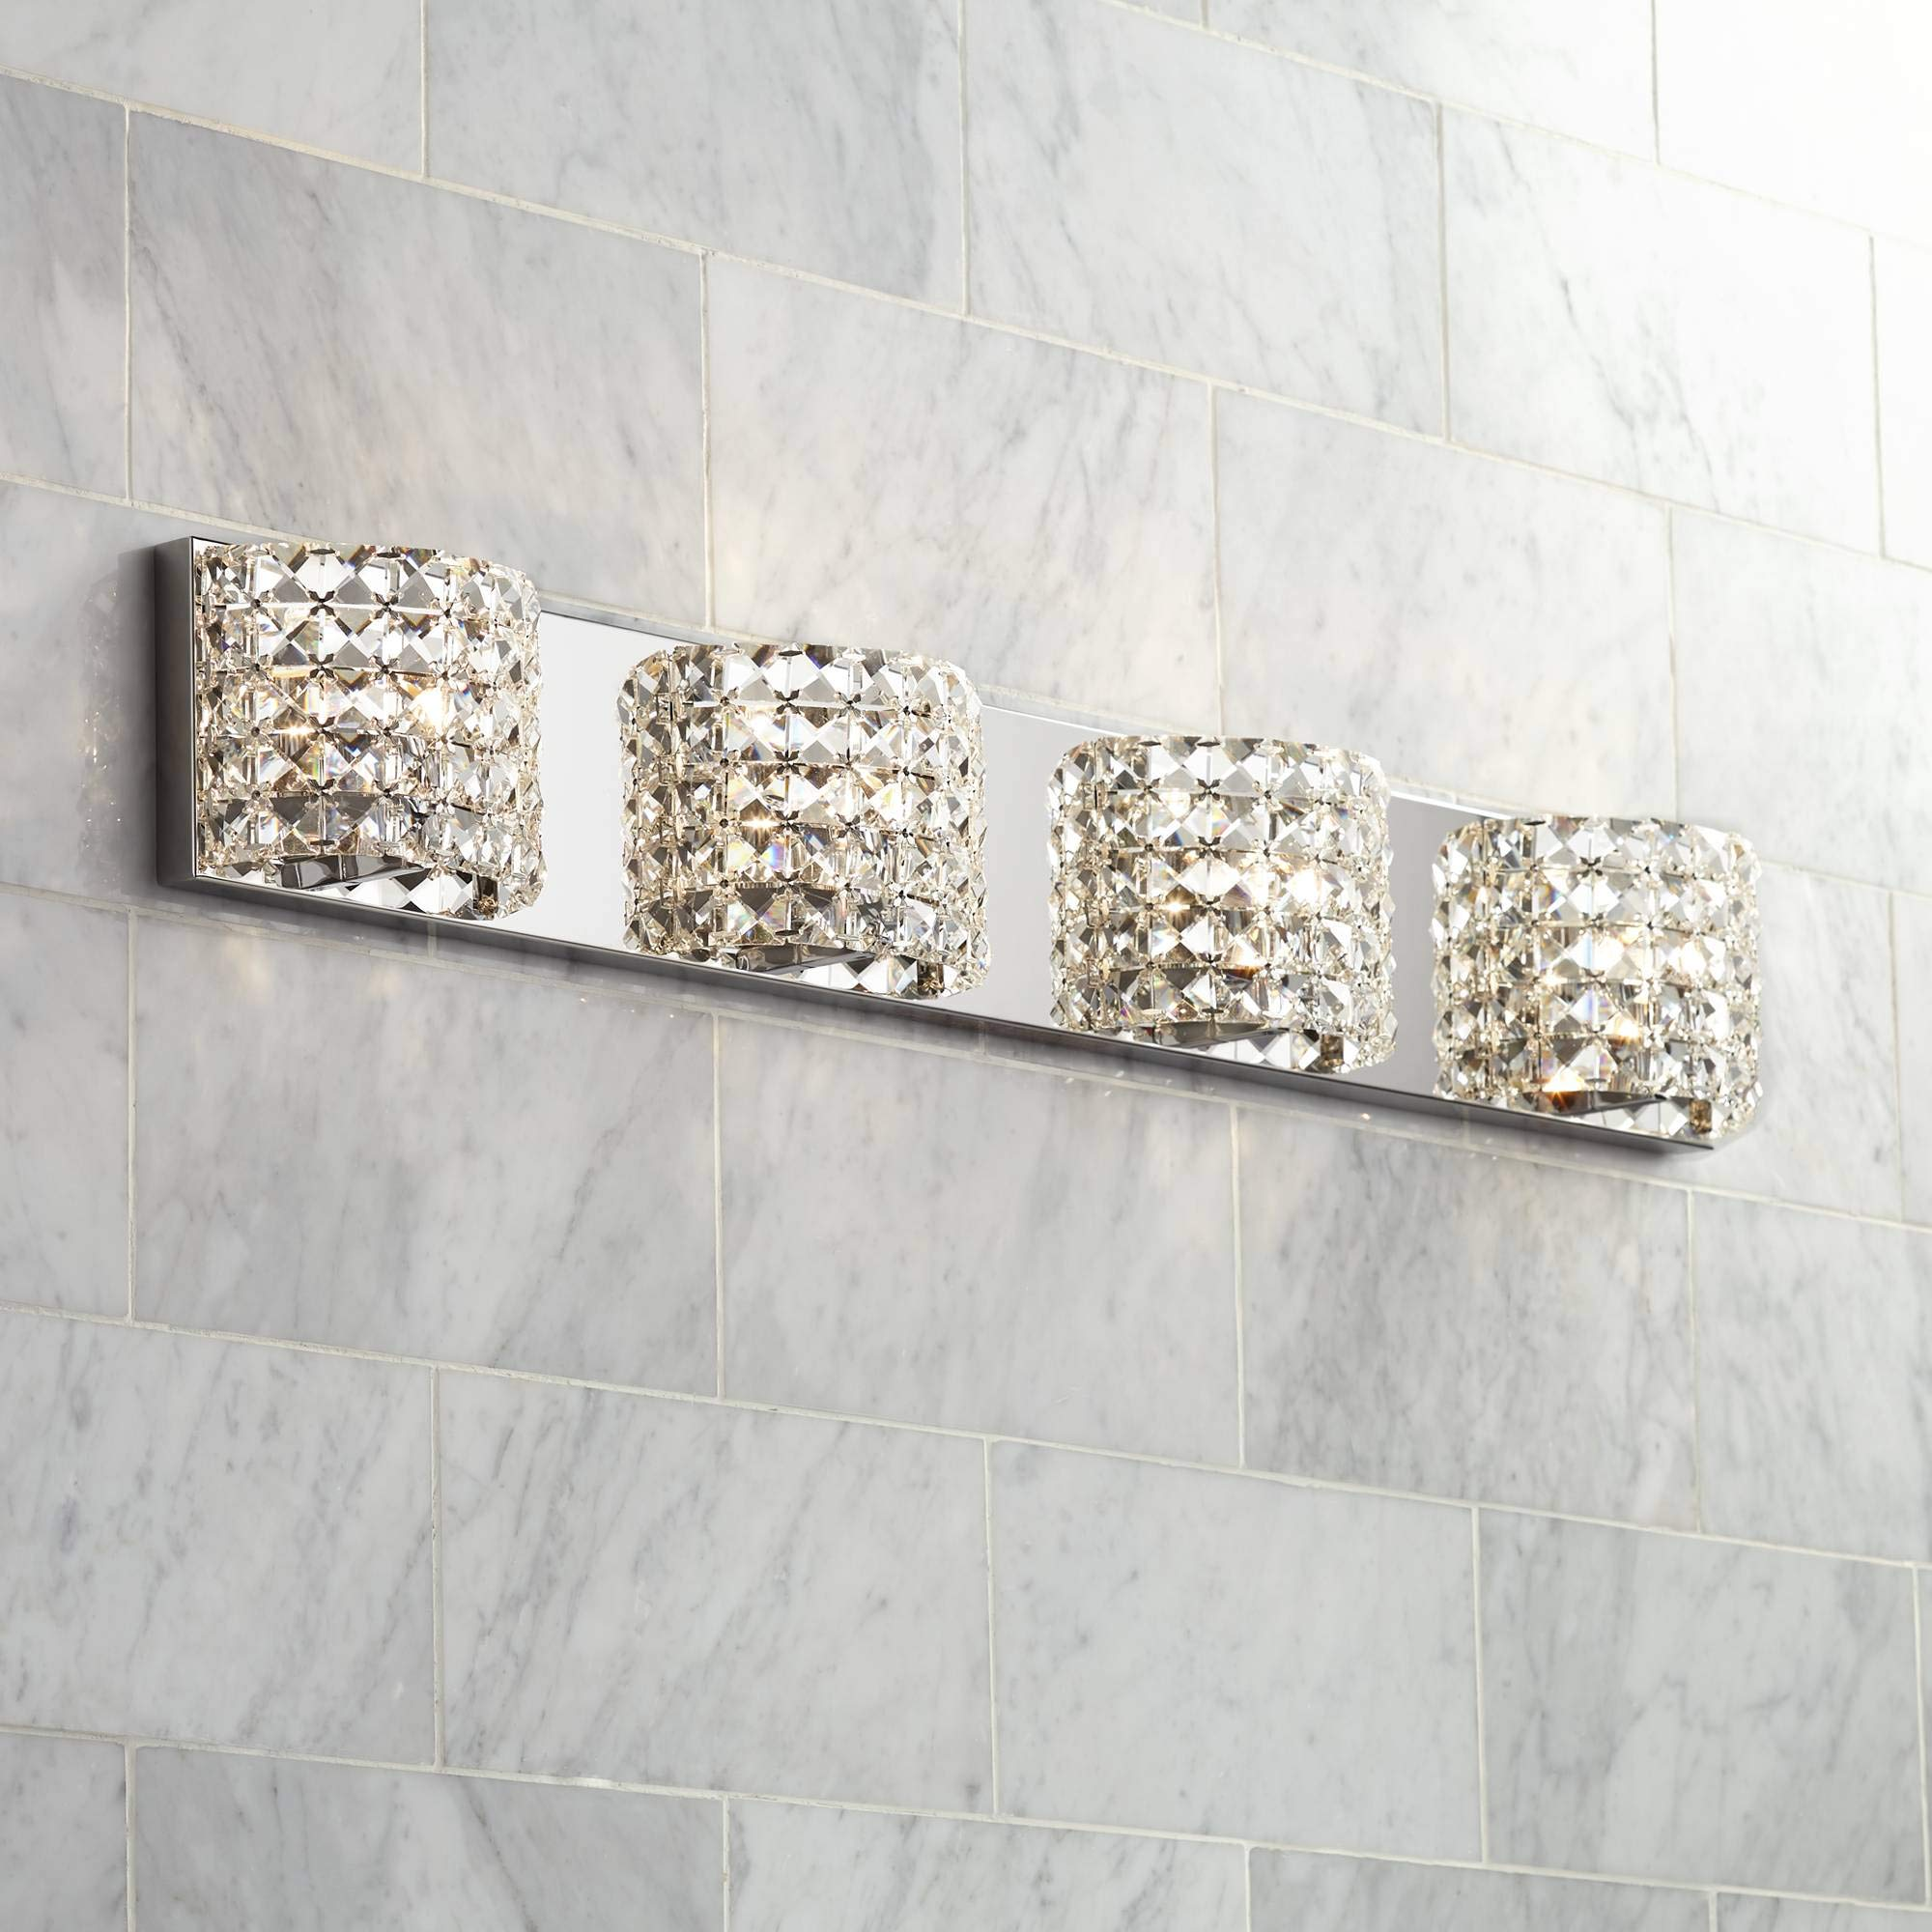 Cesenna 35 1/2'' Wide Crystal 4-Light Bath Light - Vienna Full Spectrum